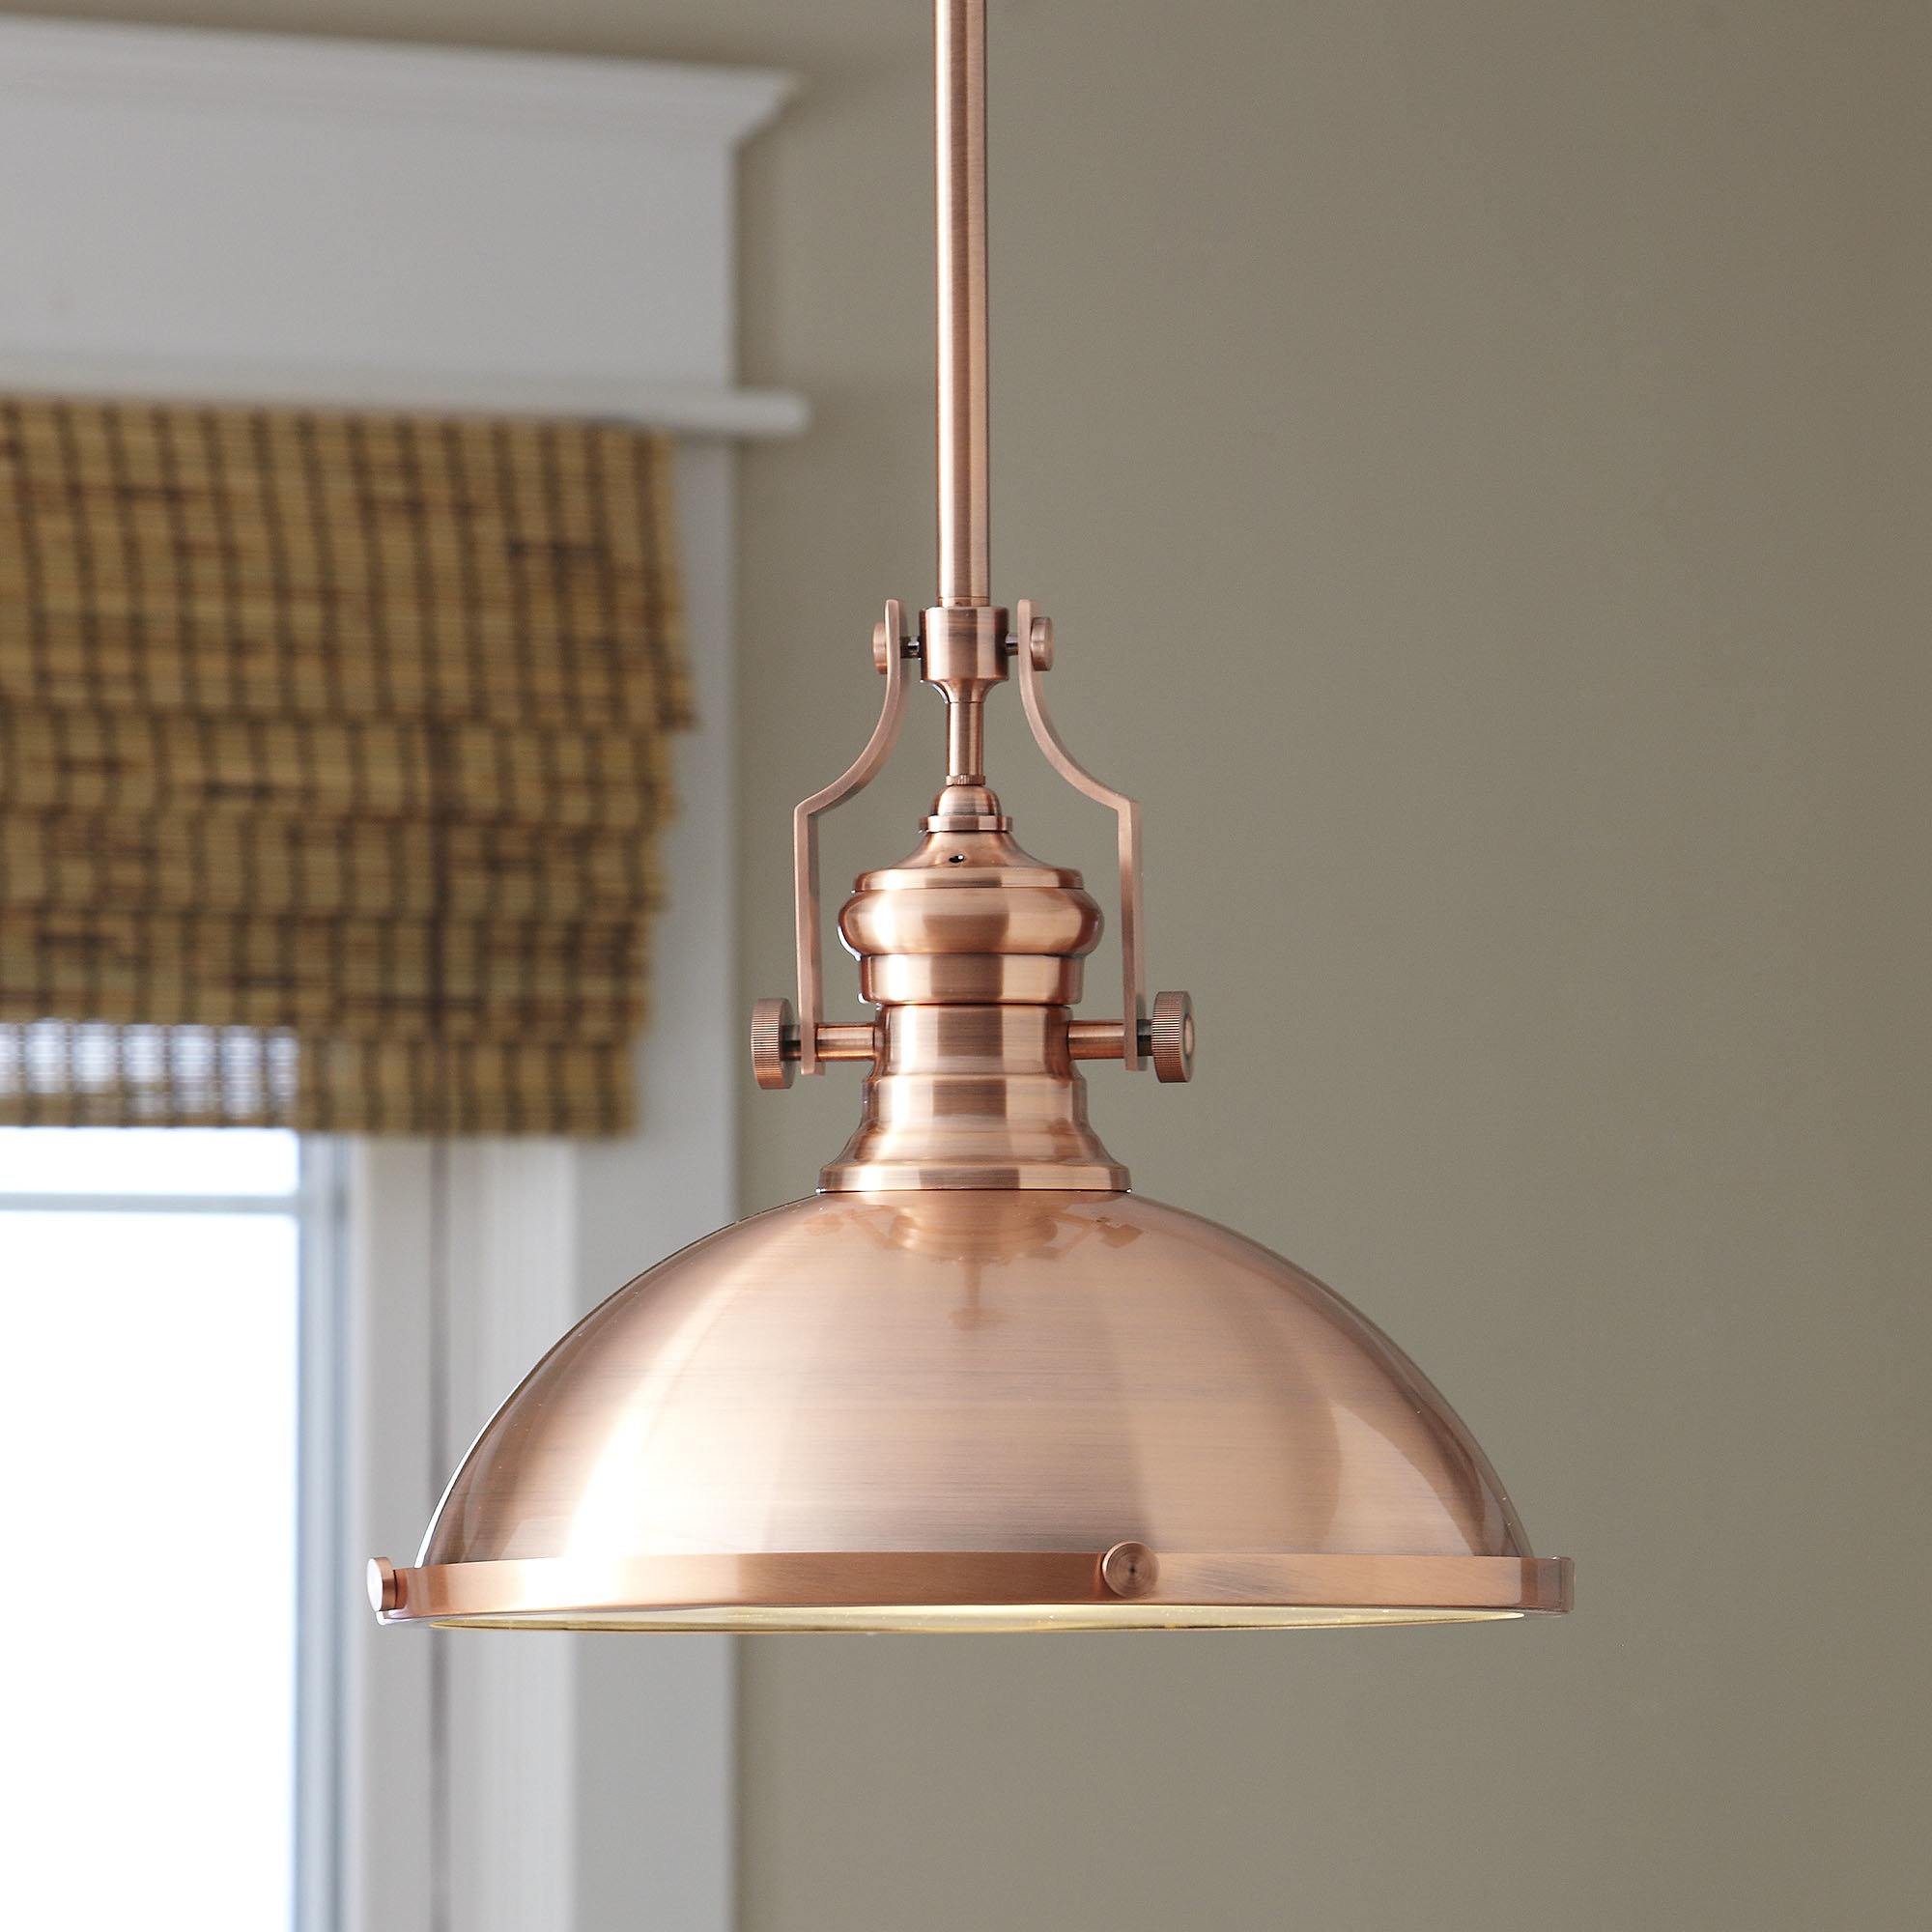 1 Light Single Dome Pendant Throughout Monadnock 1 Light Single Dome Pendants (Photo 26 of 30)